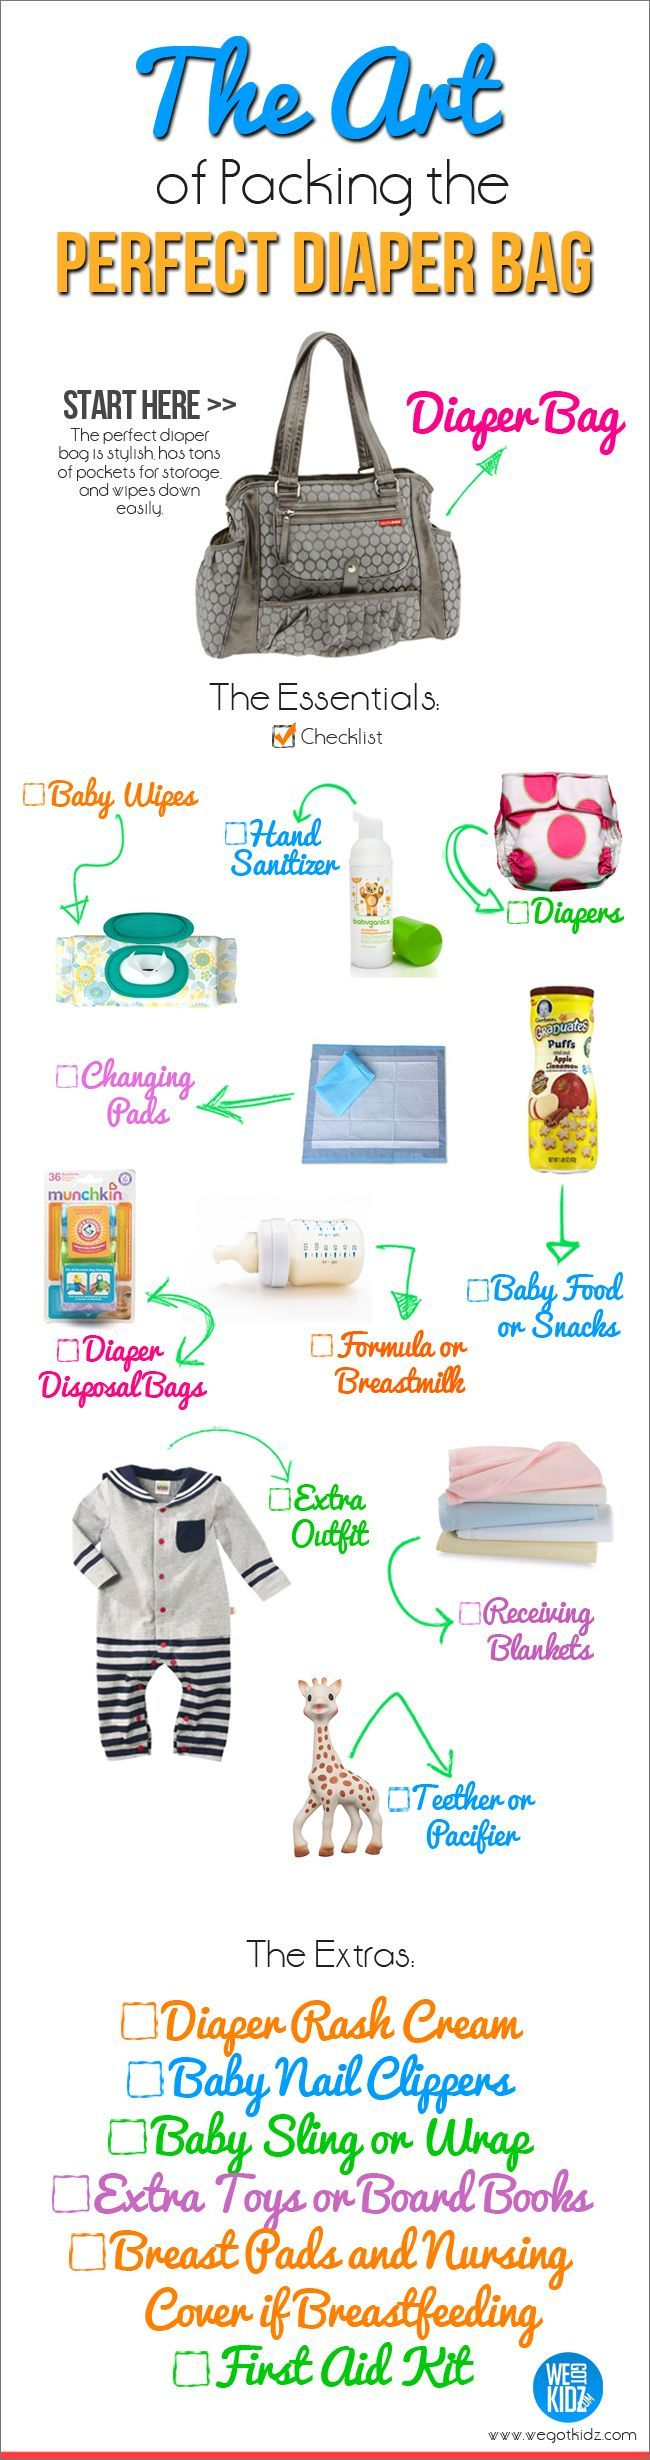 The Art of Packing the Perfect Diaper Bag #newborns #newparent #babies: